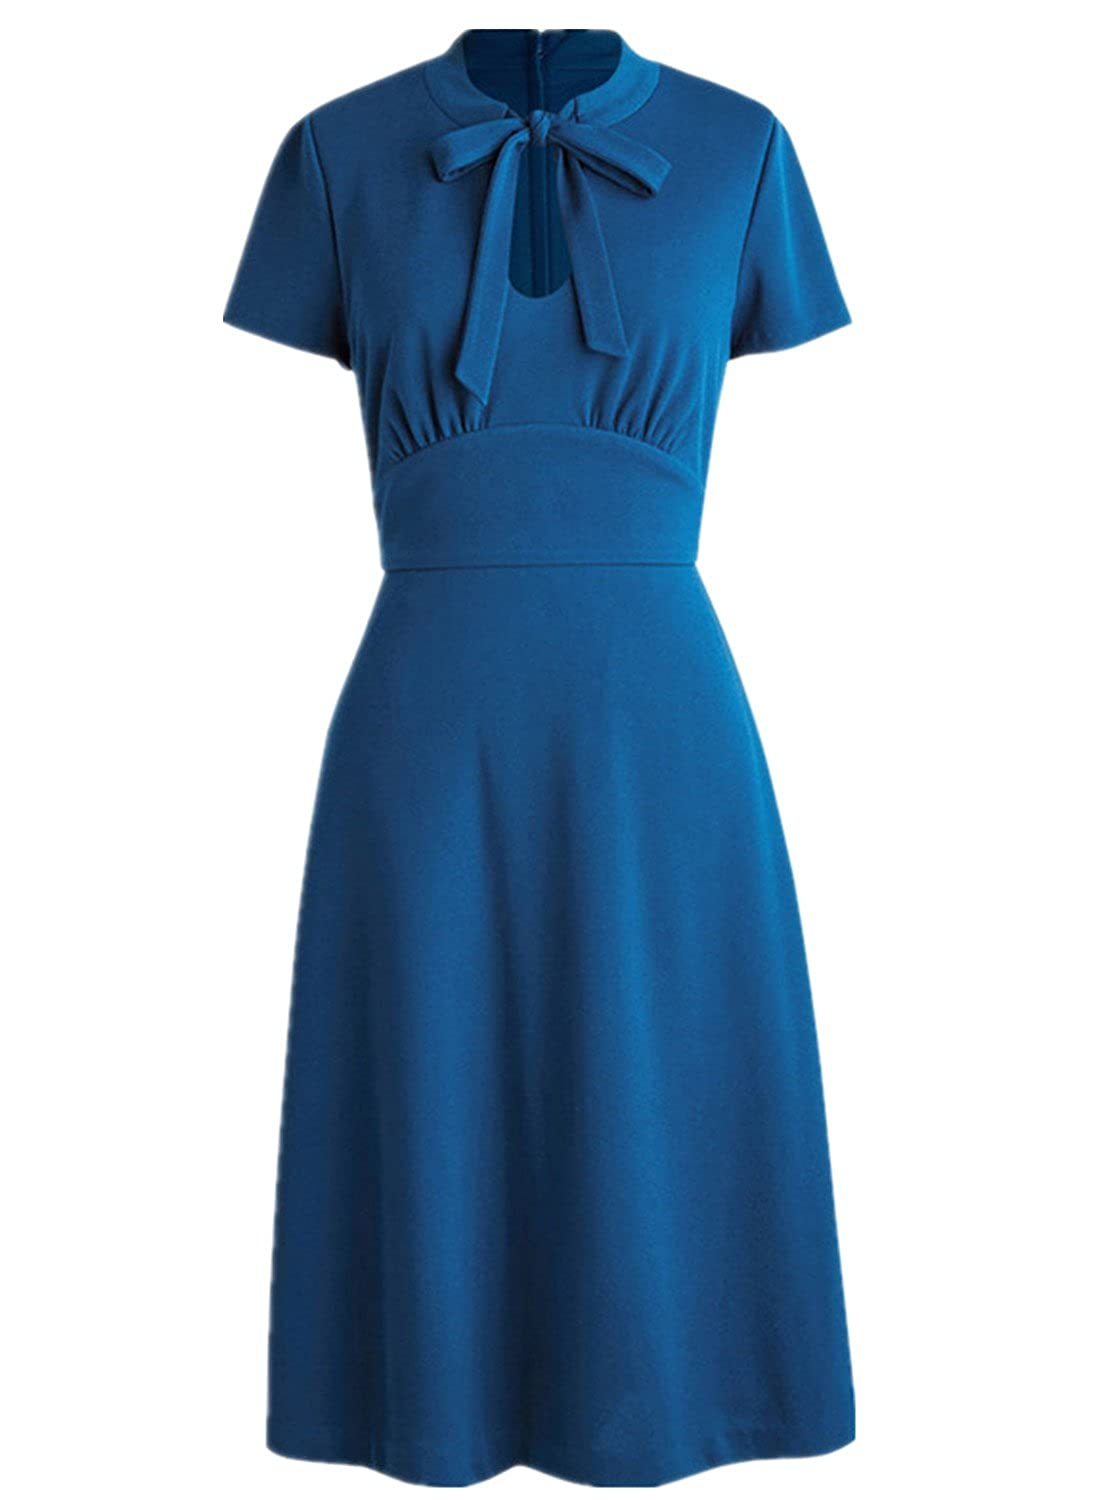 Agent Peggy Carter Costume, Dress, Hats Wellwits Womens Keyhole Bow Tie Front 1940s Vintage Collared Dress $23.99 AT vintagedancer.com